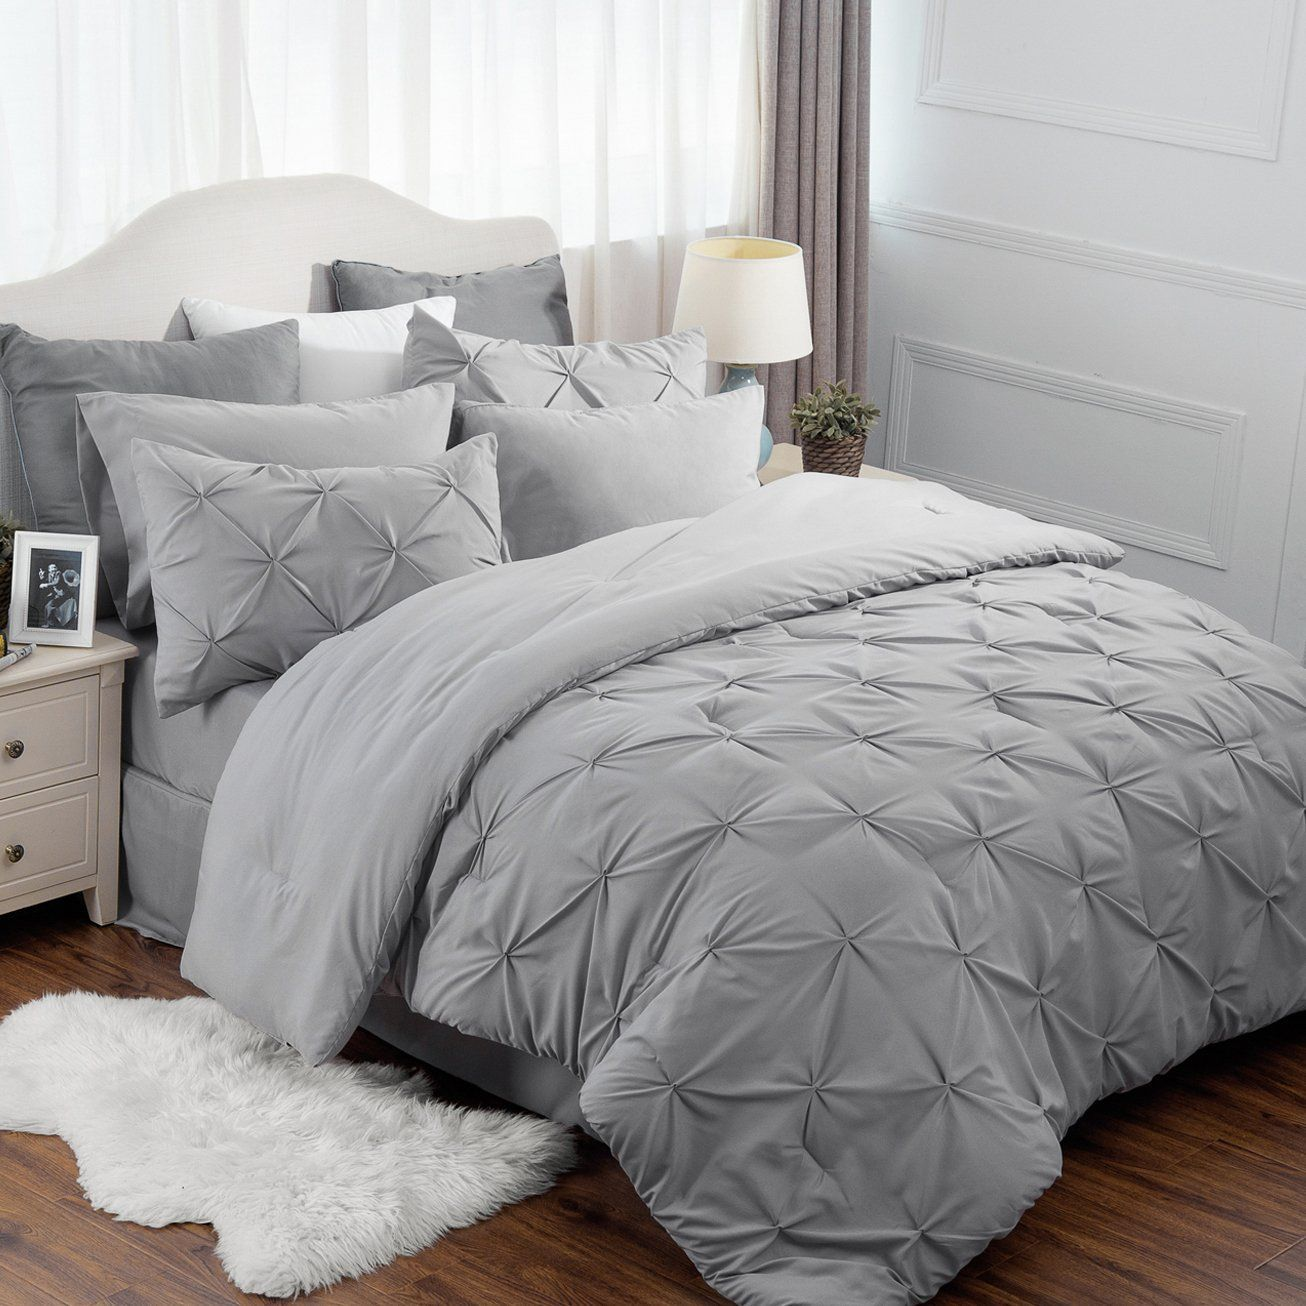 Farmhouse Comforters Rustic Comforters Farmhouse Goals In 2020 Comforter Sets Bed Comforter Sets Gray Bed Set